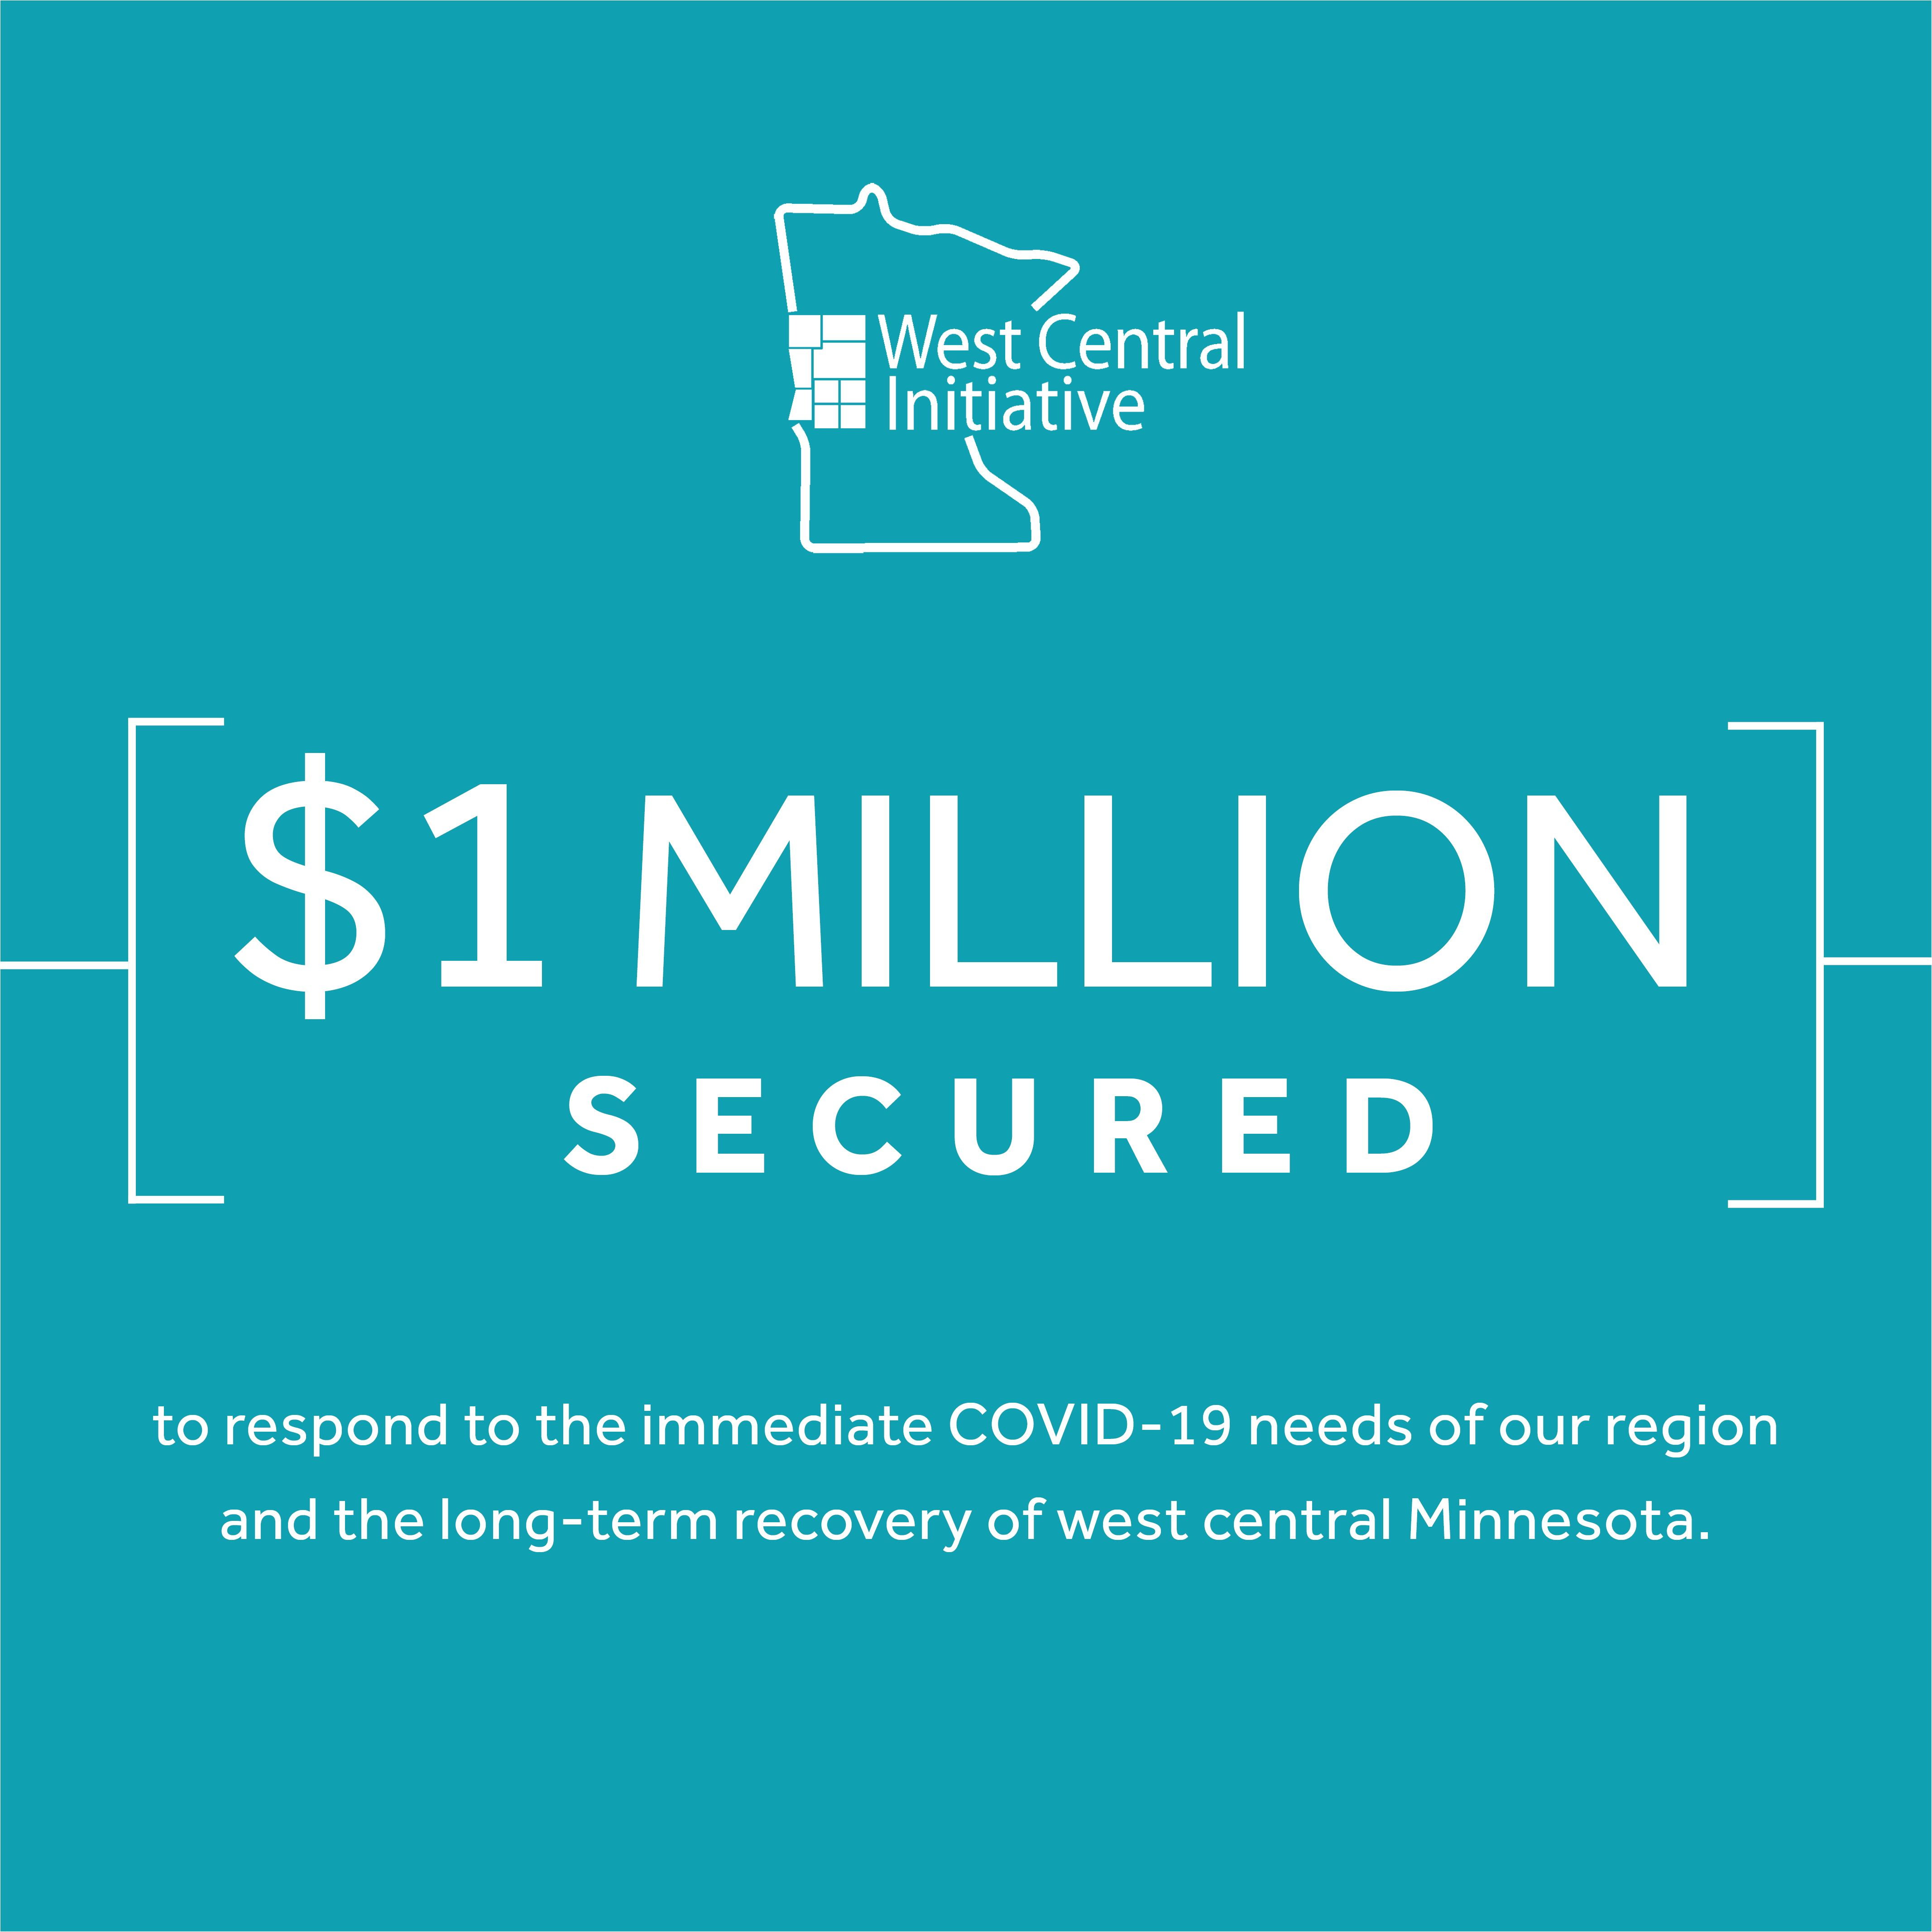 West Central Initiative Secures $1 million to Help Region in COVID-19 Recovery